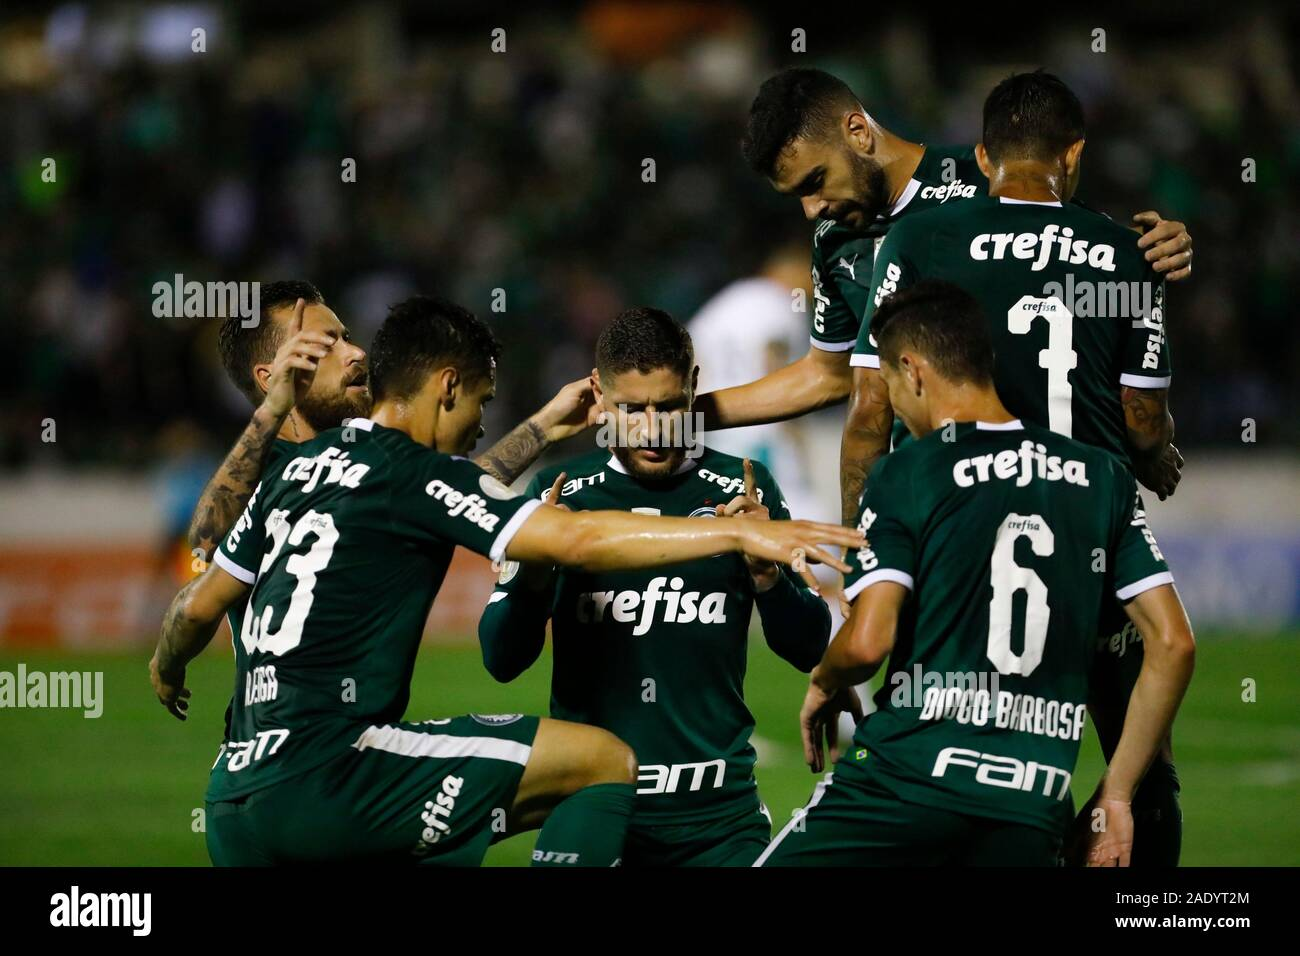 Campinas, Brazil. 05th Dec, 2019. Zé Rafael celebrates his goal, Palmeiras'st goal oal during a match between Palmeiras x Goiás held at Brinco de Ouro Stadium in Campinas, The match ich is valid for the 37th round of the 2019 Brazilian Championship. Credit: Ricardo Moreira/FotoArena/Alamy Live News Stock Photo